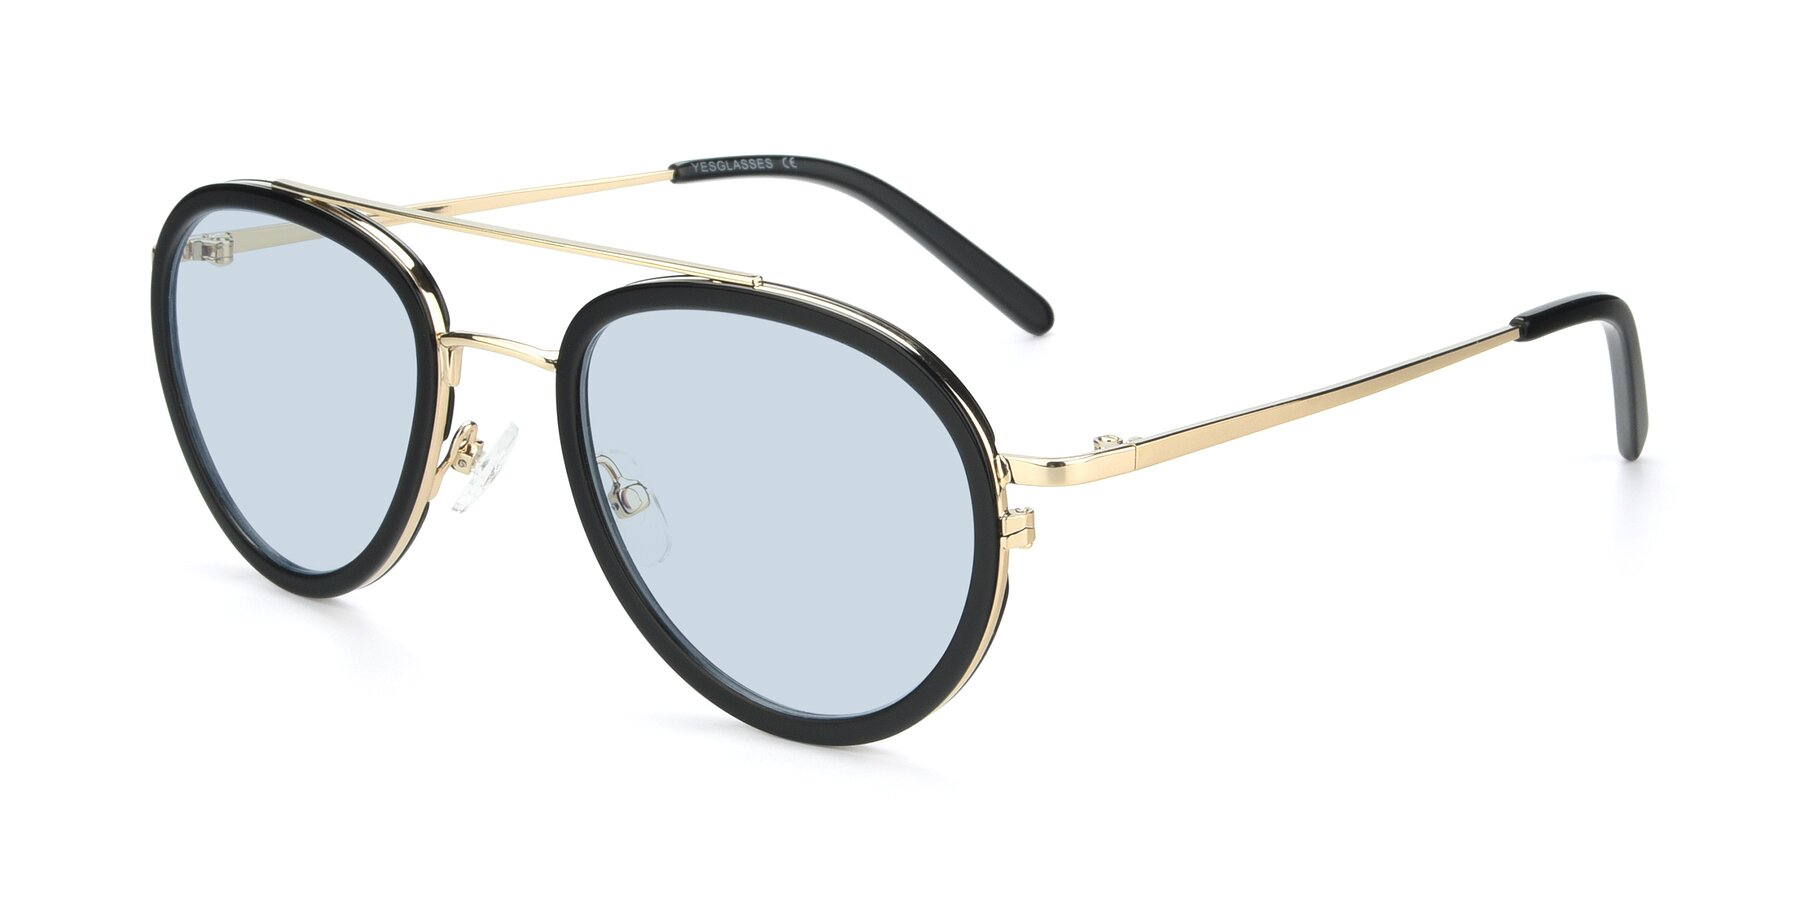 Angle of 9554 in Black-Gold with Light Blue Tinted Lenses